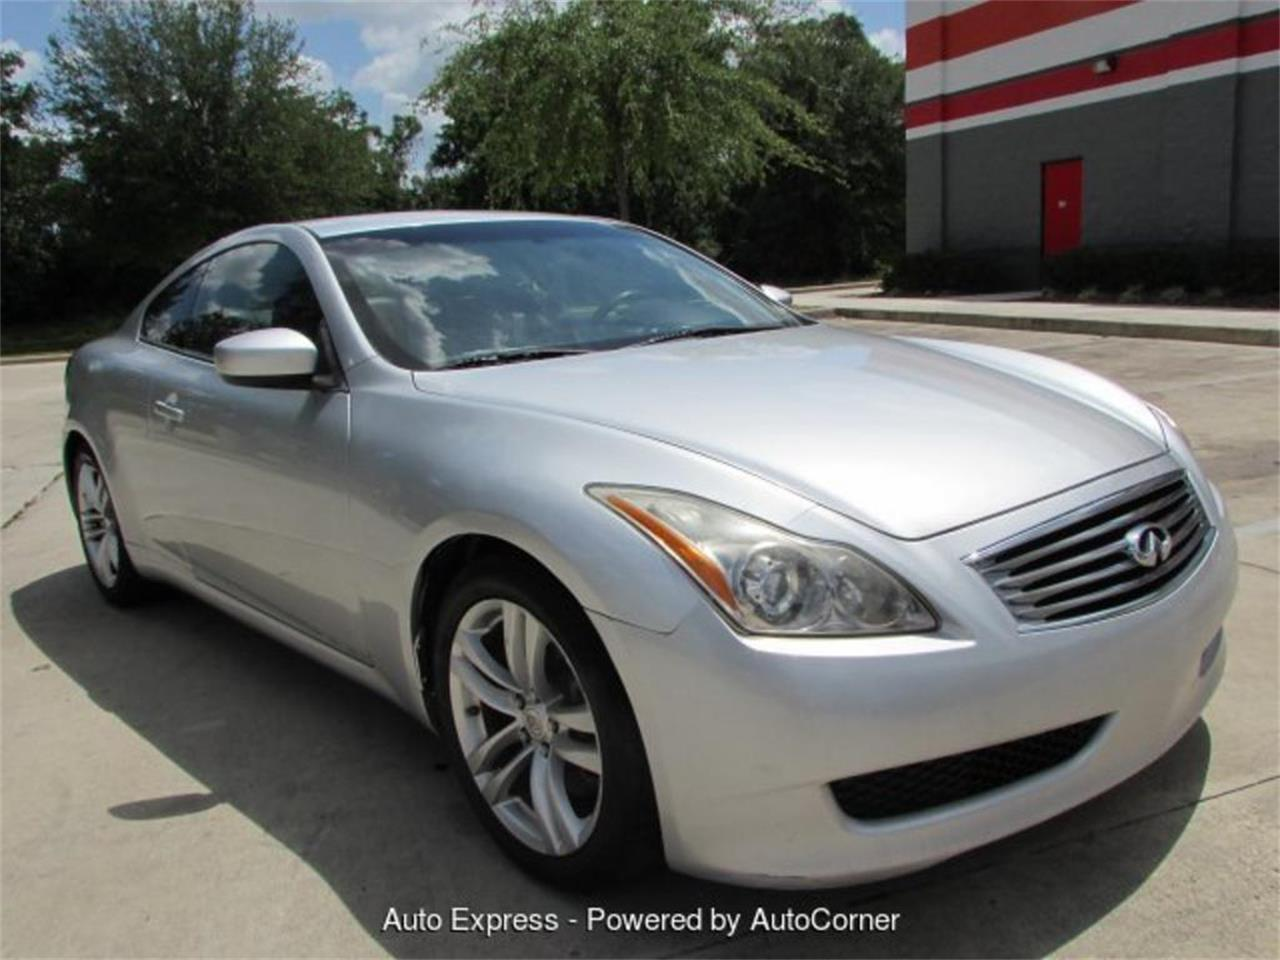 2010 Infiniti G37 (CC-1215926) for sale in Orlando, Florida